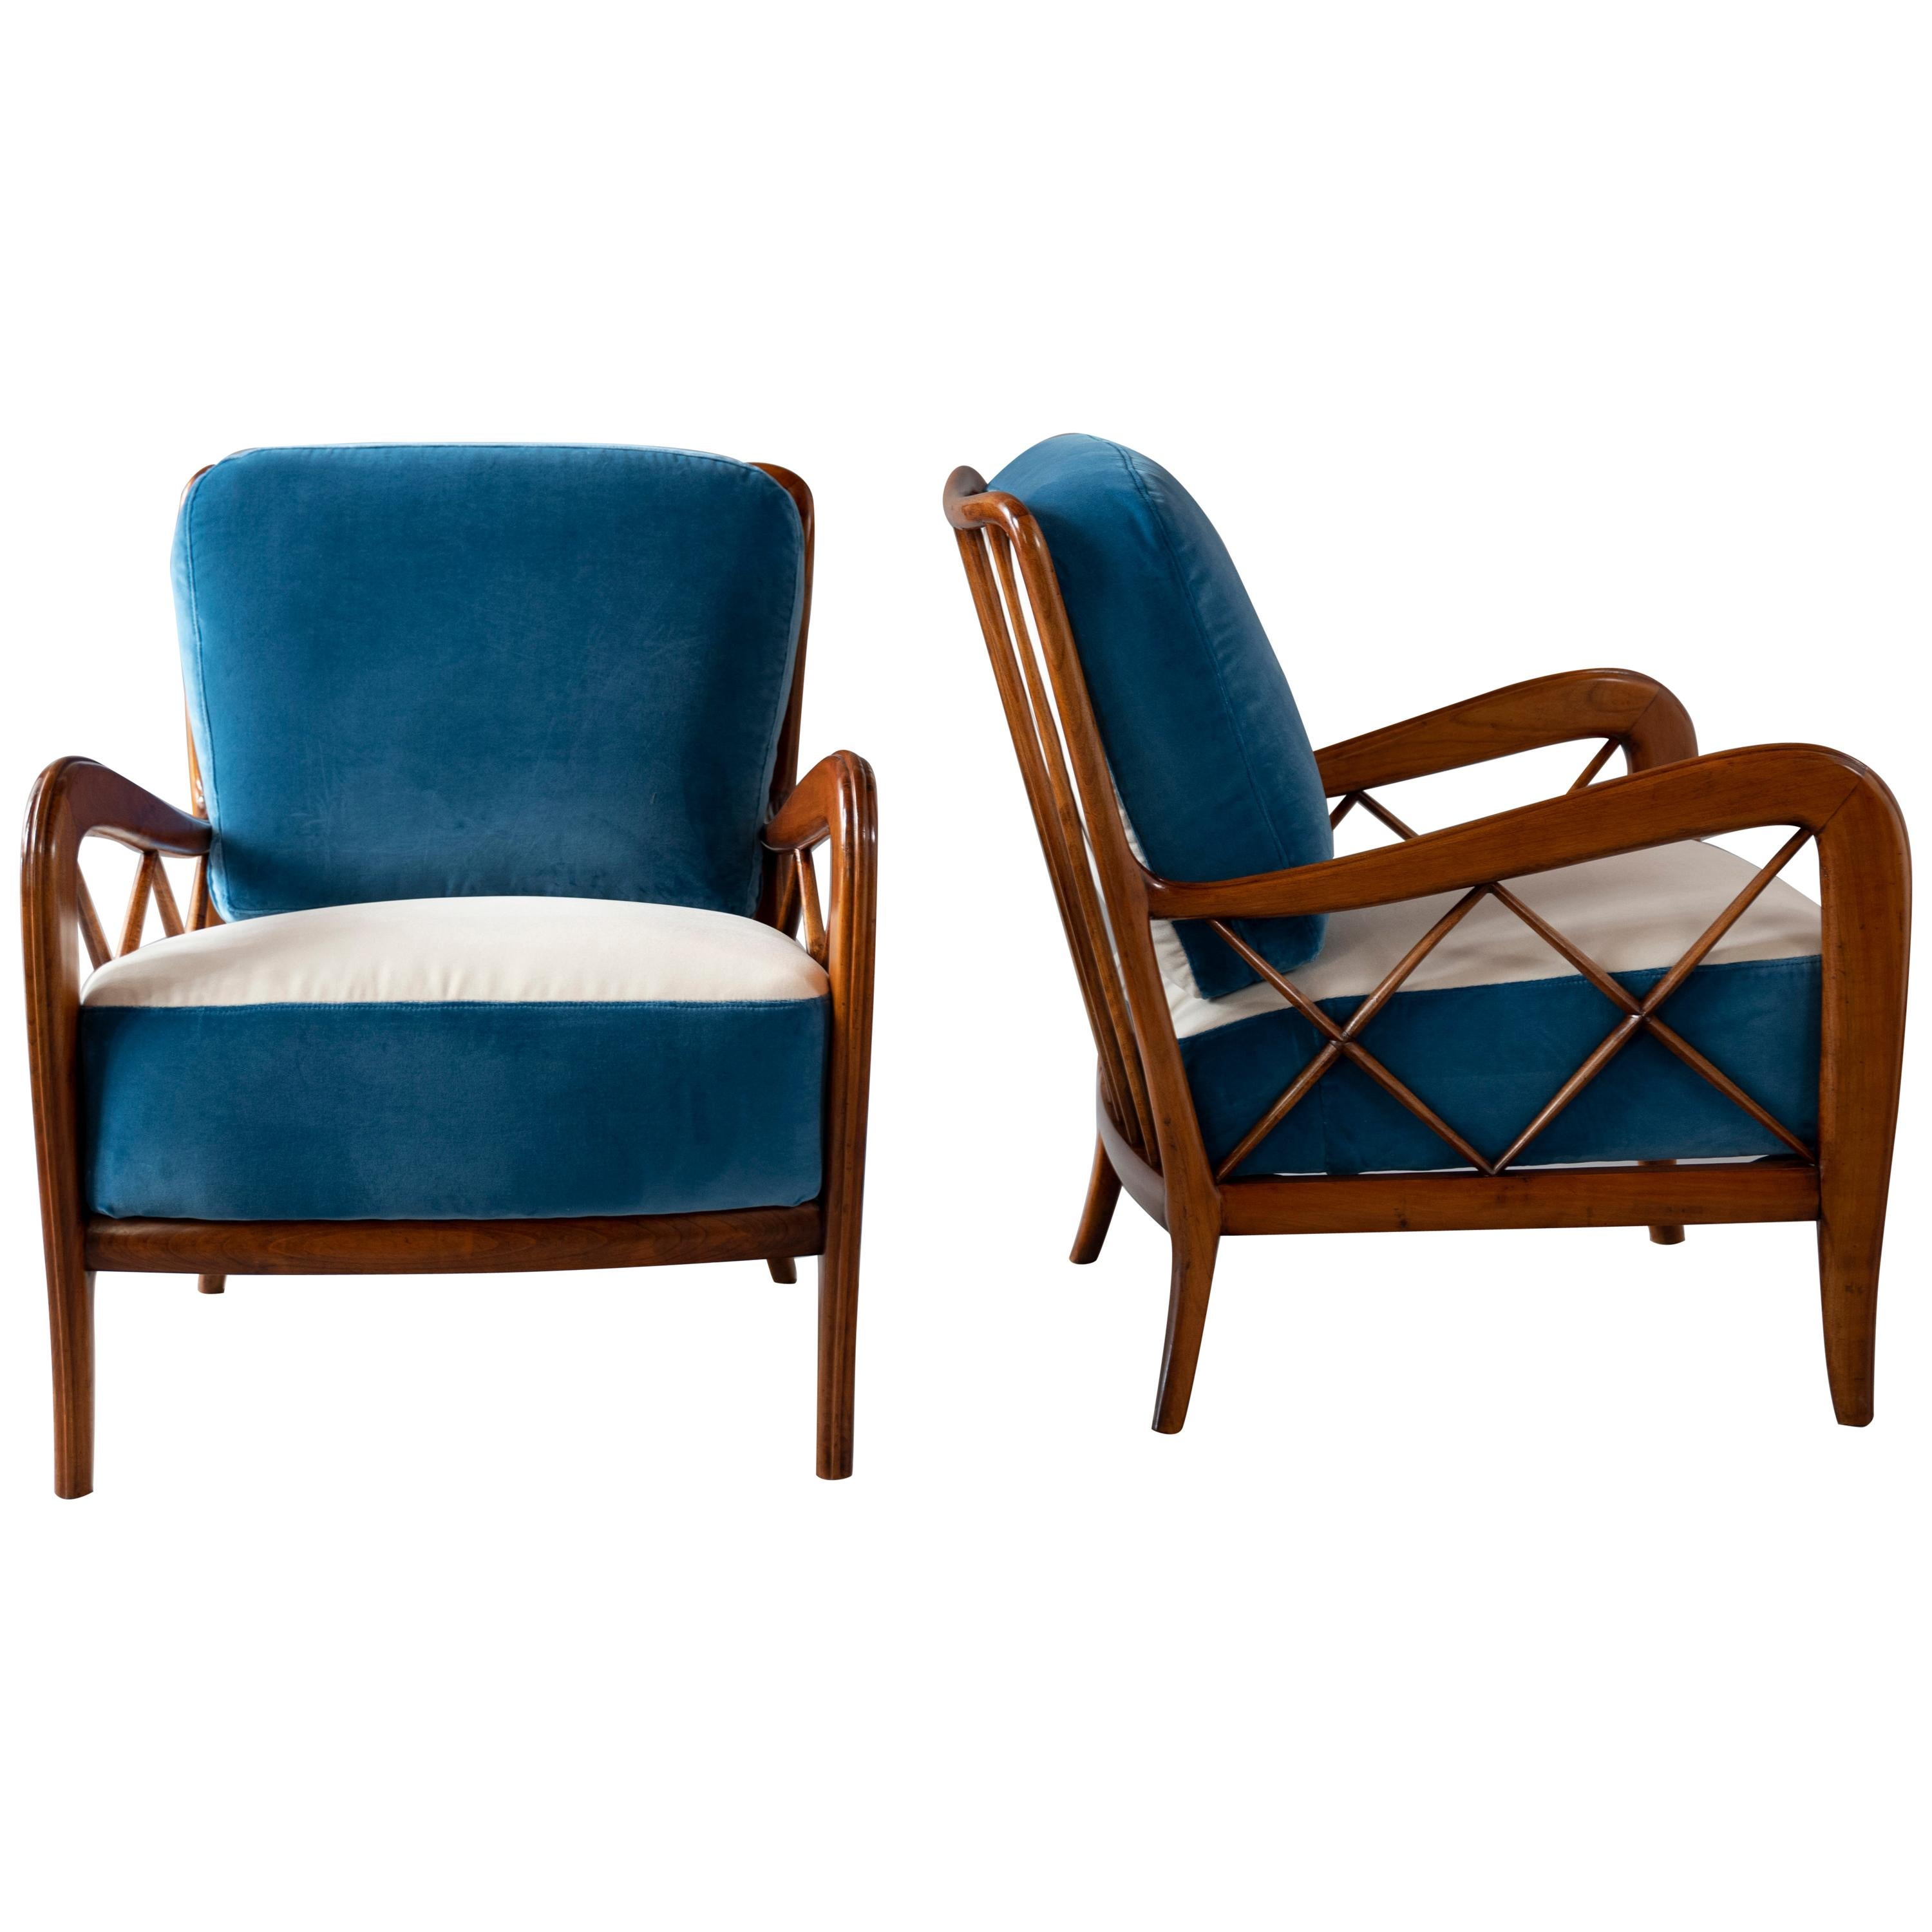 Midcentury Pair of Walnut Armchairs by Paolo Buffa